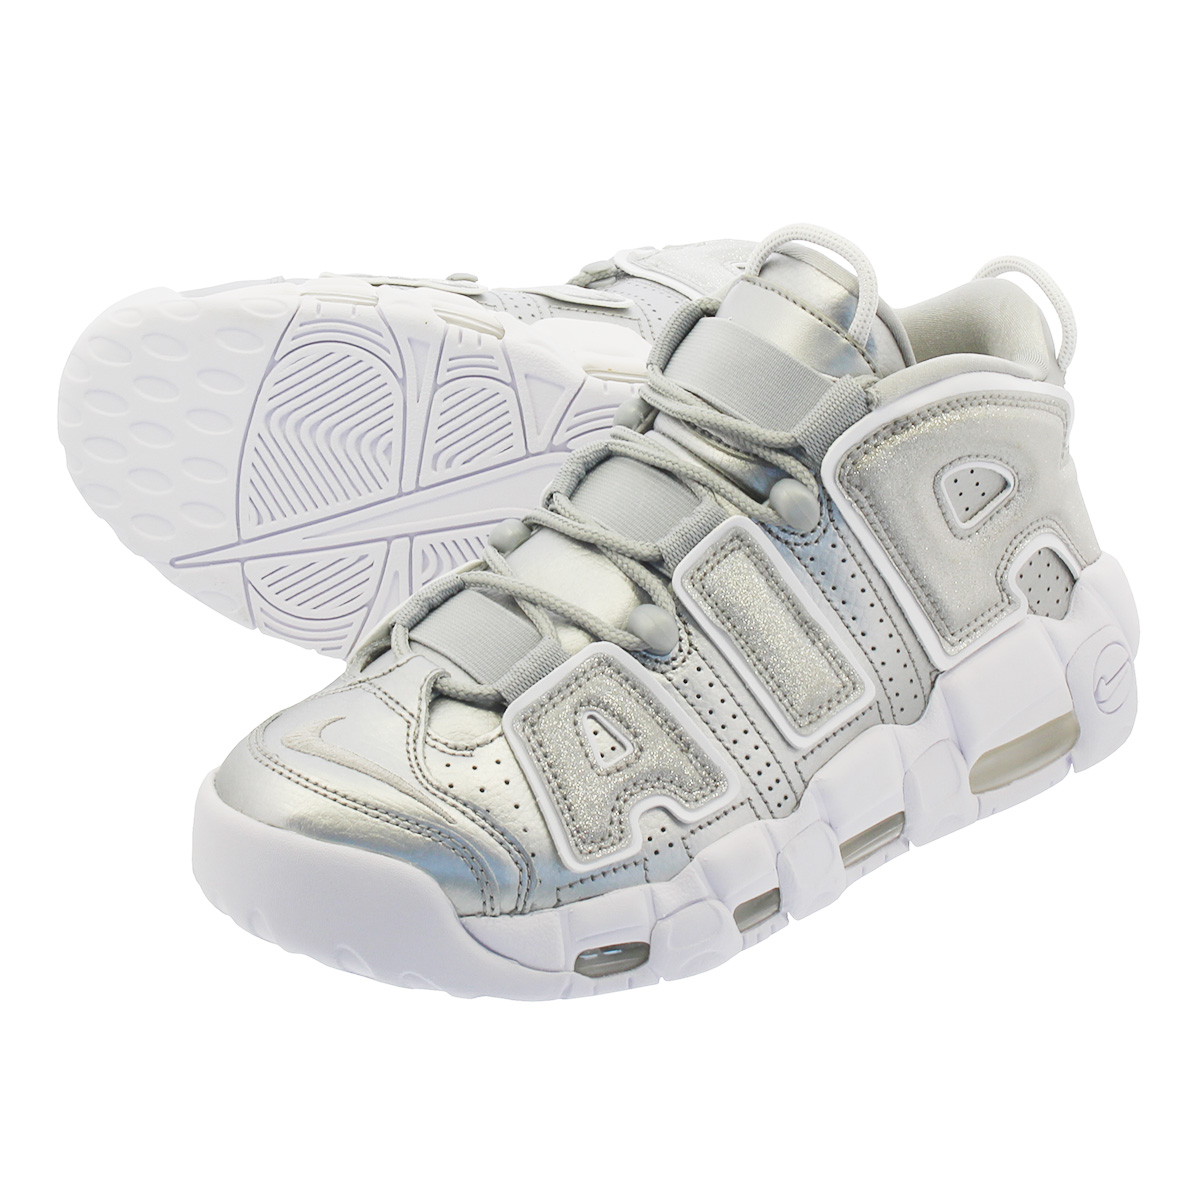 best website 3fe6f b29e9 NIKE WMNS AIR MORE UPTEMPO Nike women air more up tempo METALLIC SILVER  WHITE 917,593-003